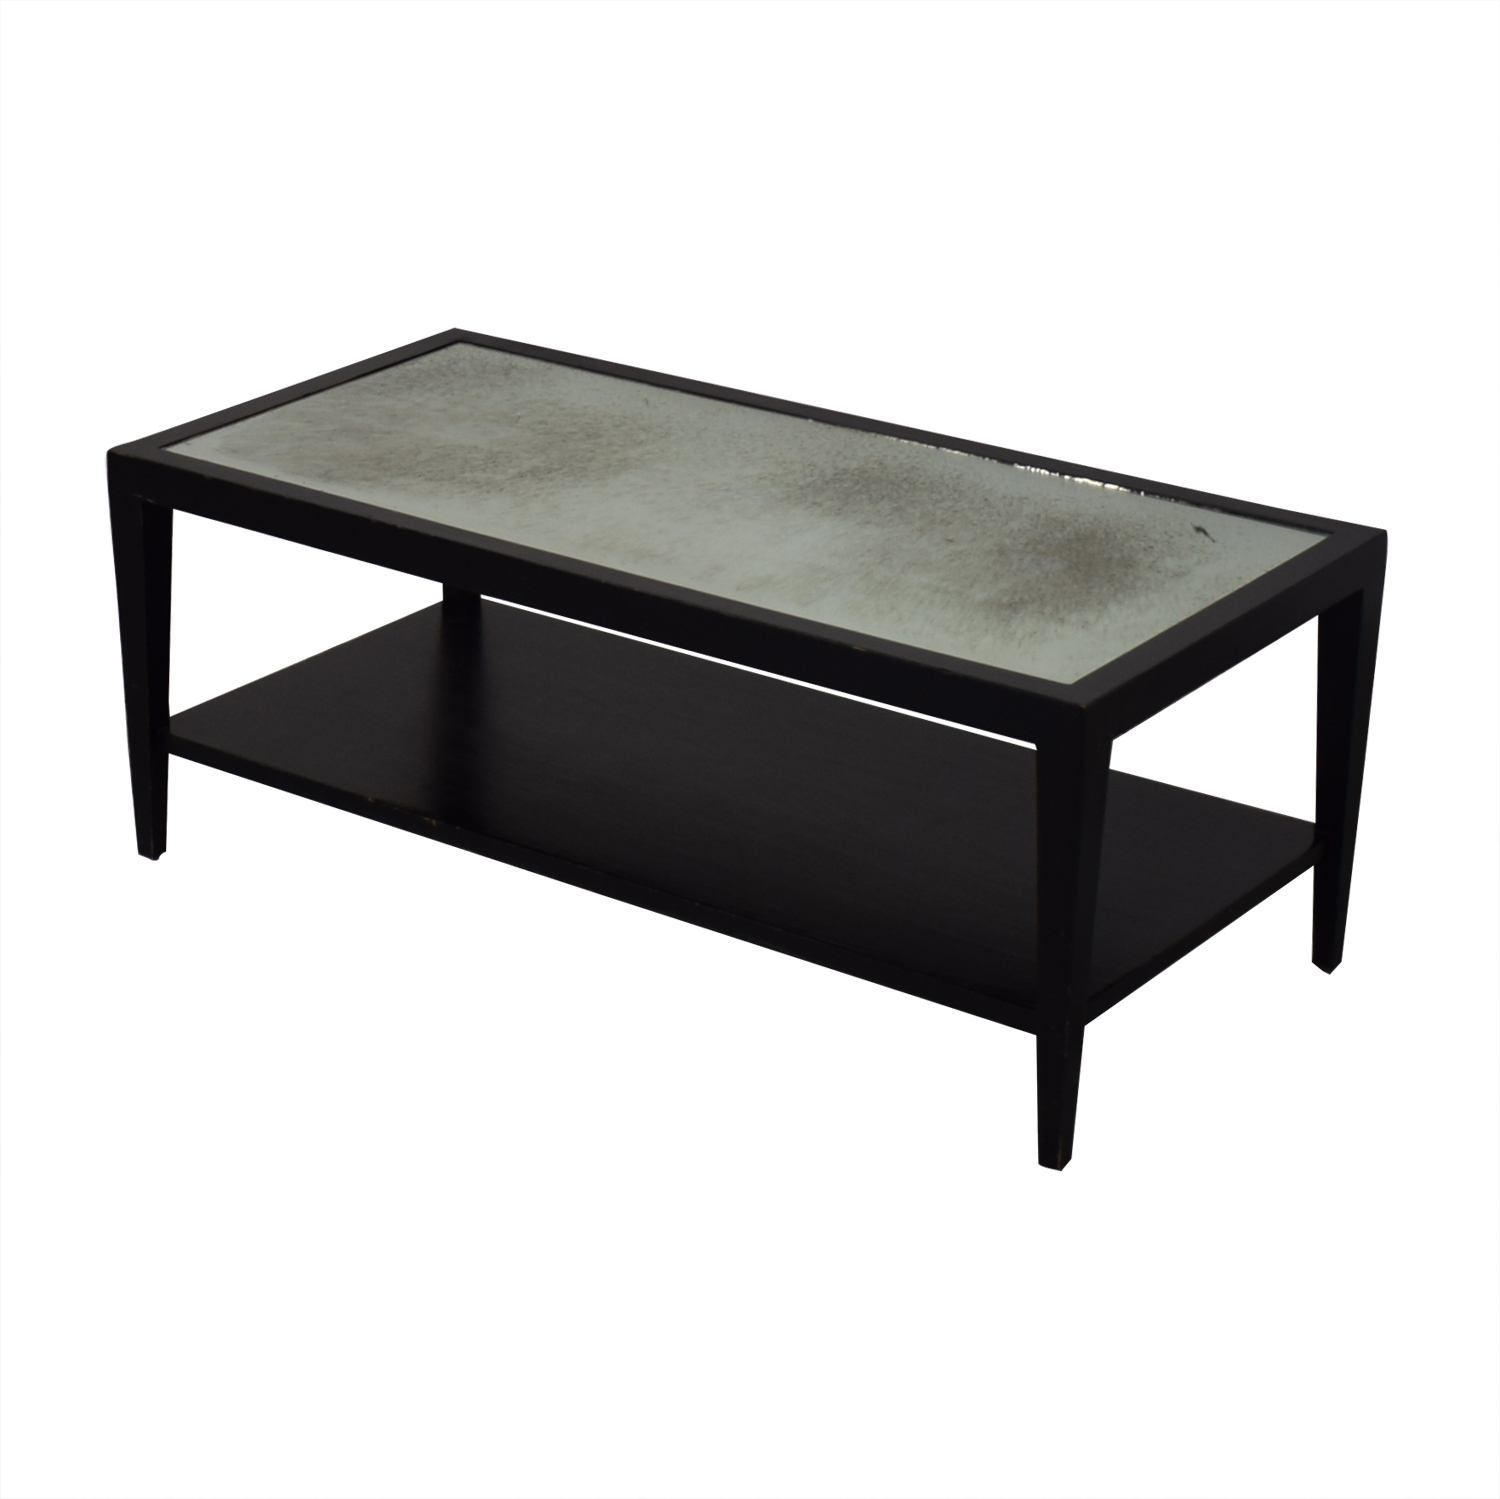 Crate & Barrel Two Tiered Coffee Table sale